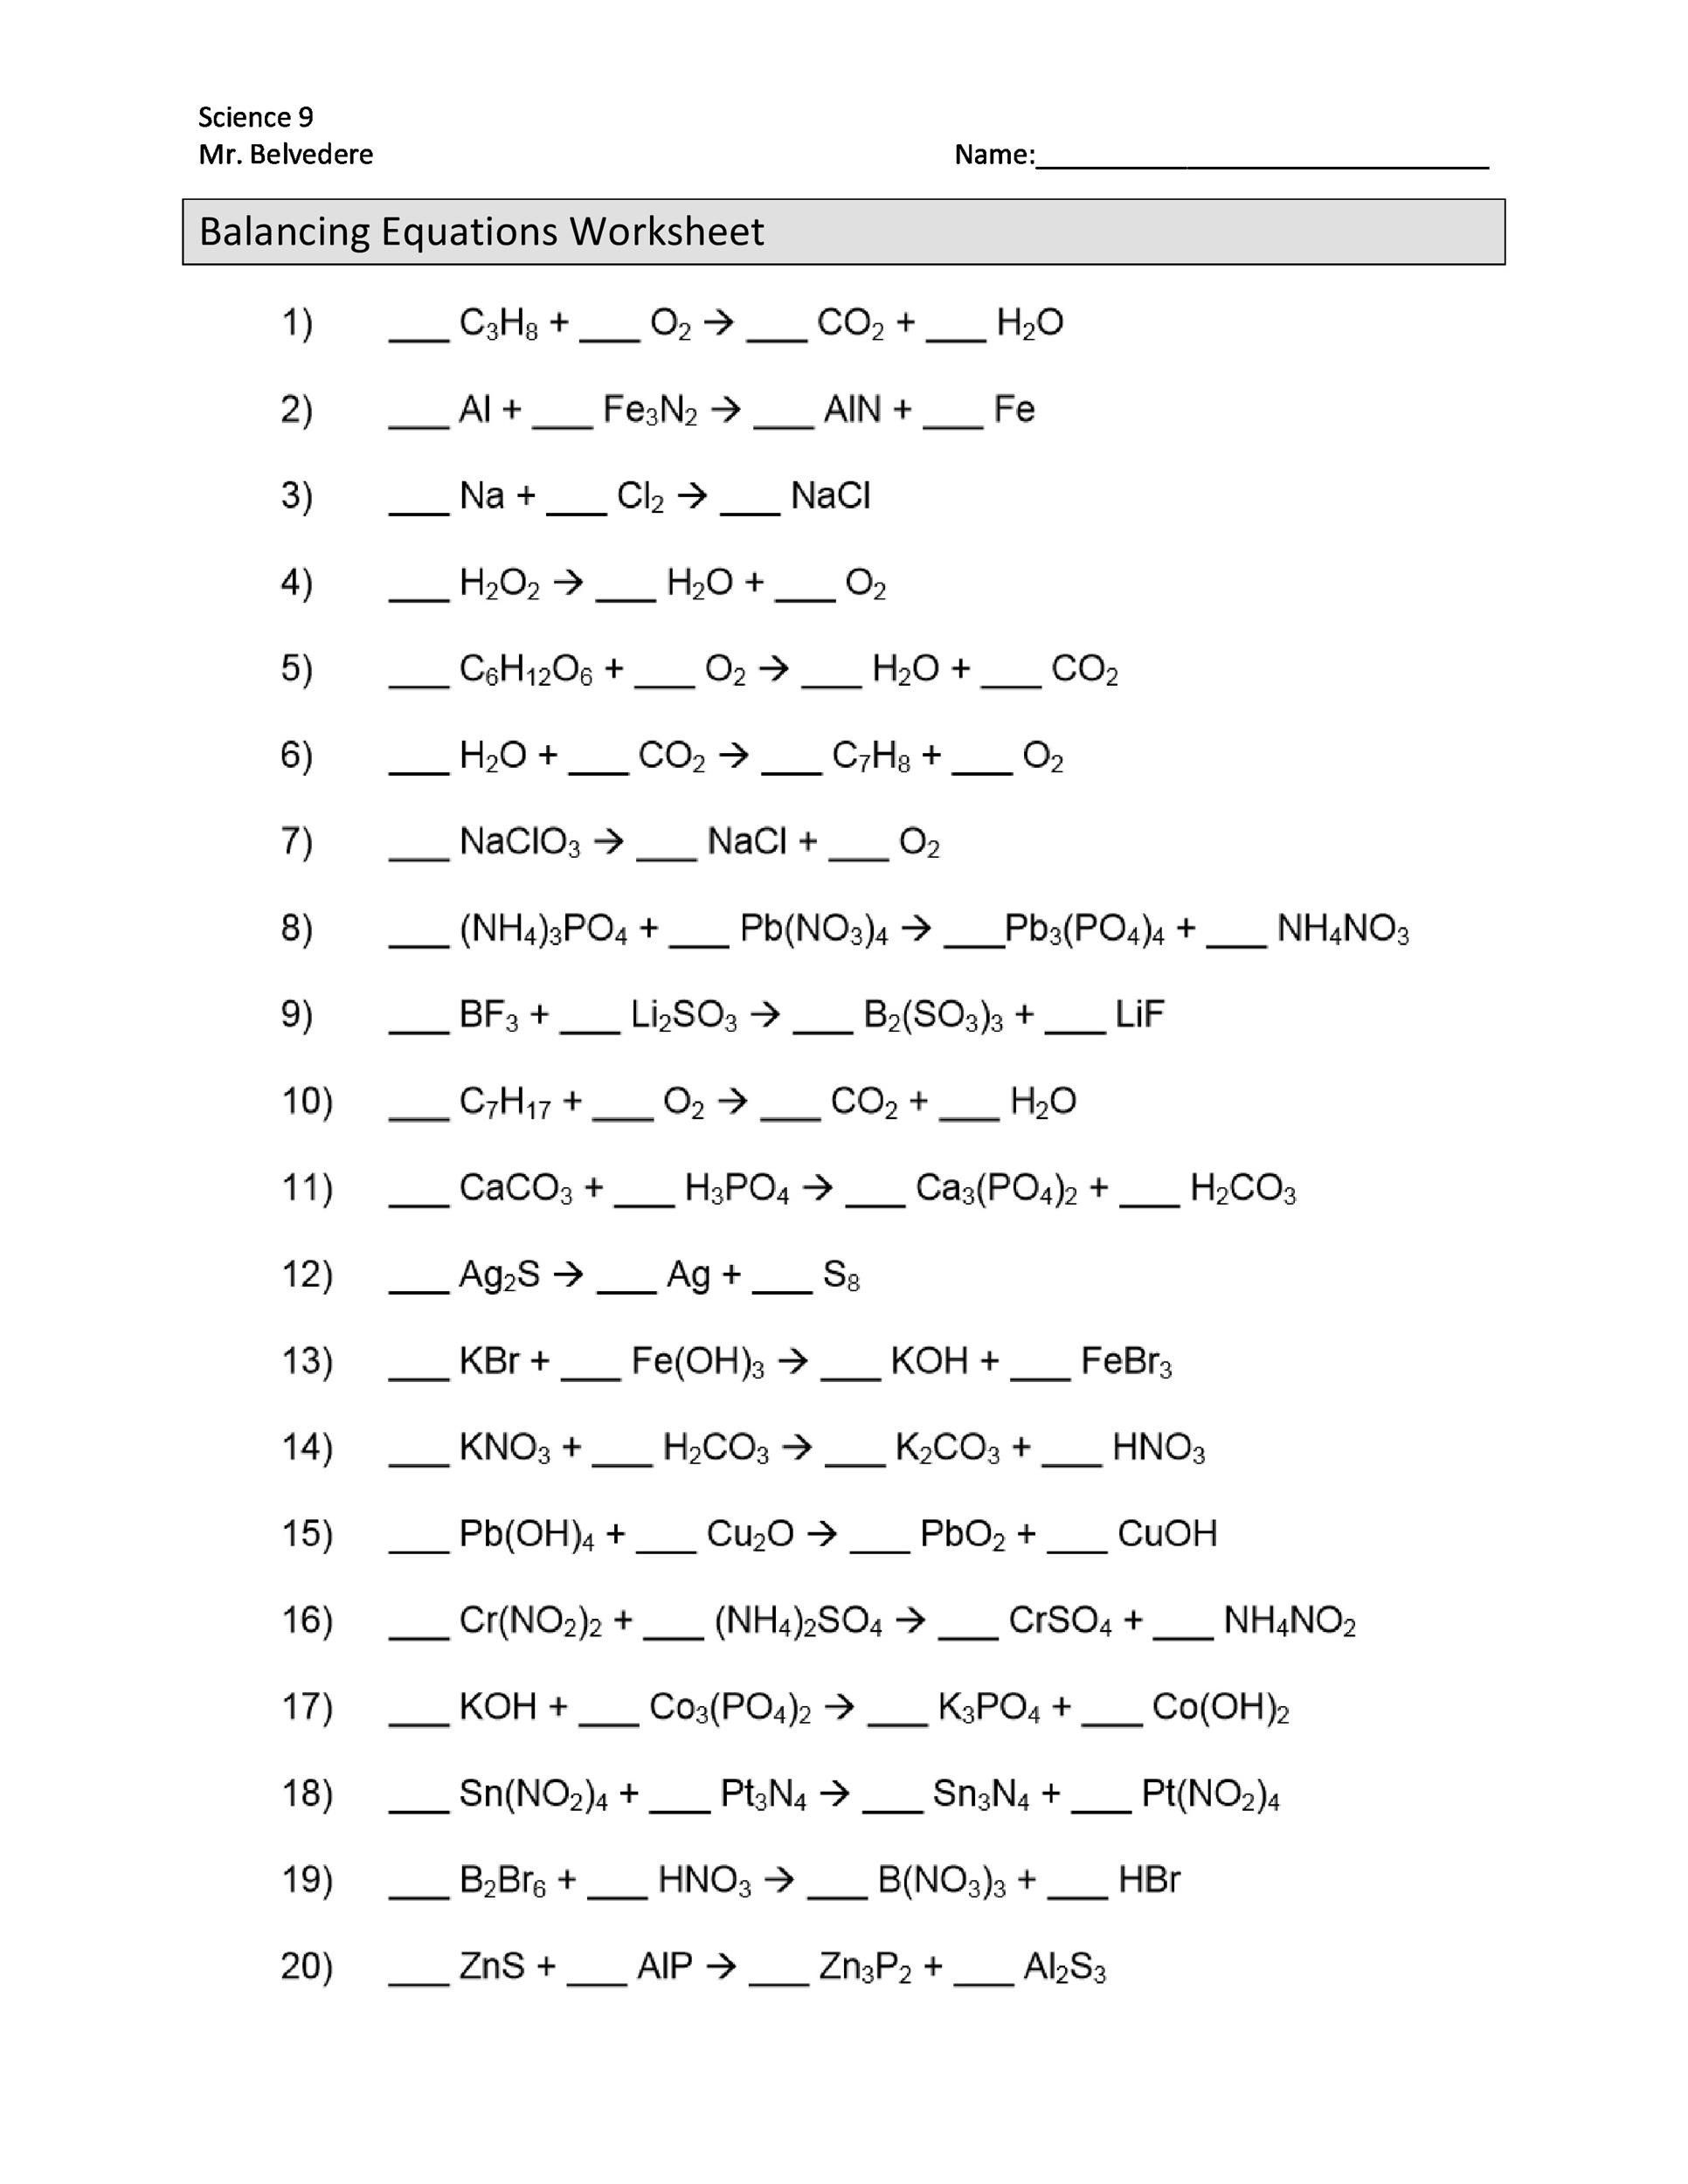 Balancing Equation Worksheet With Answers 49 Balancing